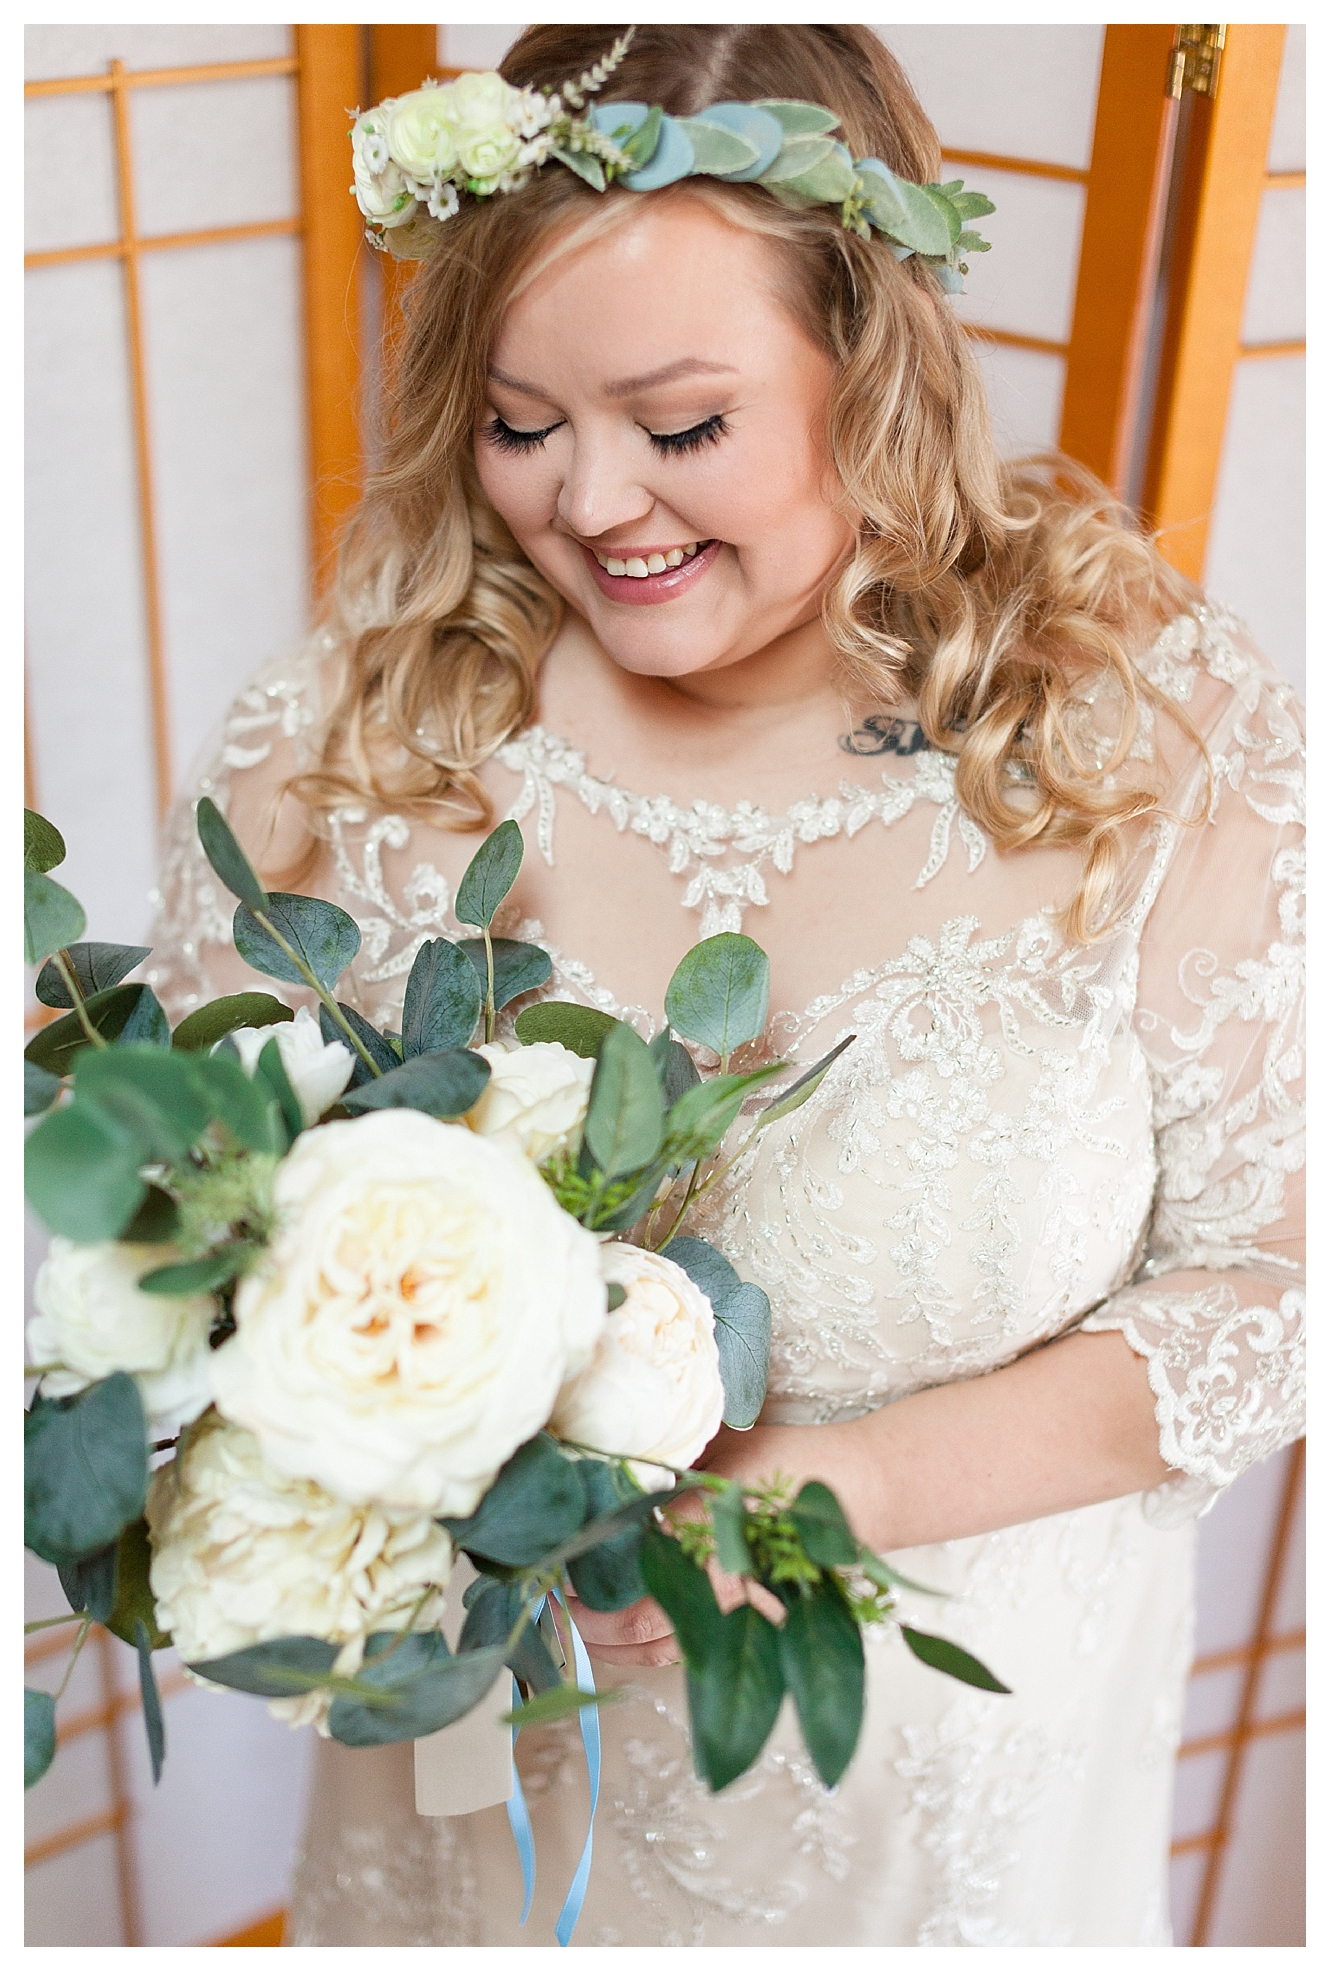 Maija, you made the most stunning bride!